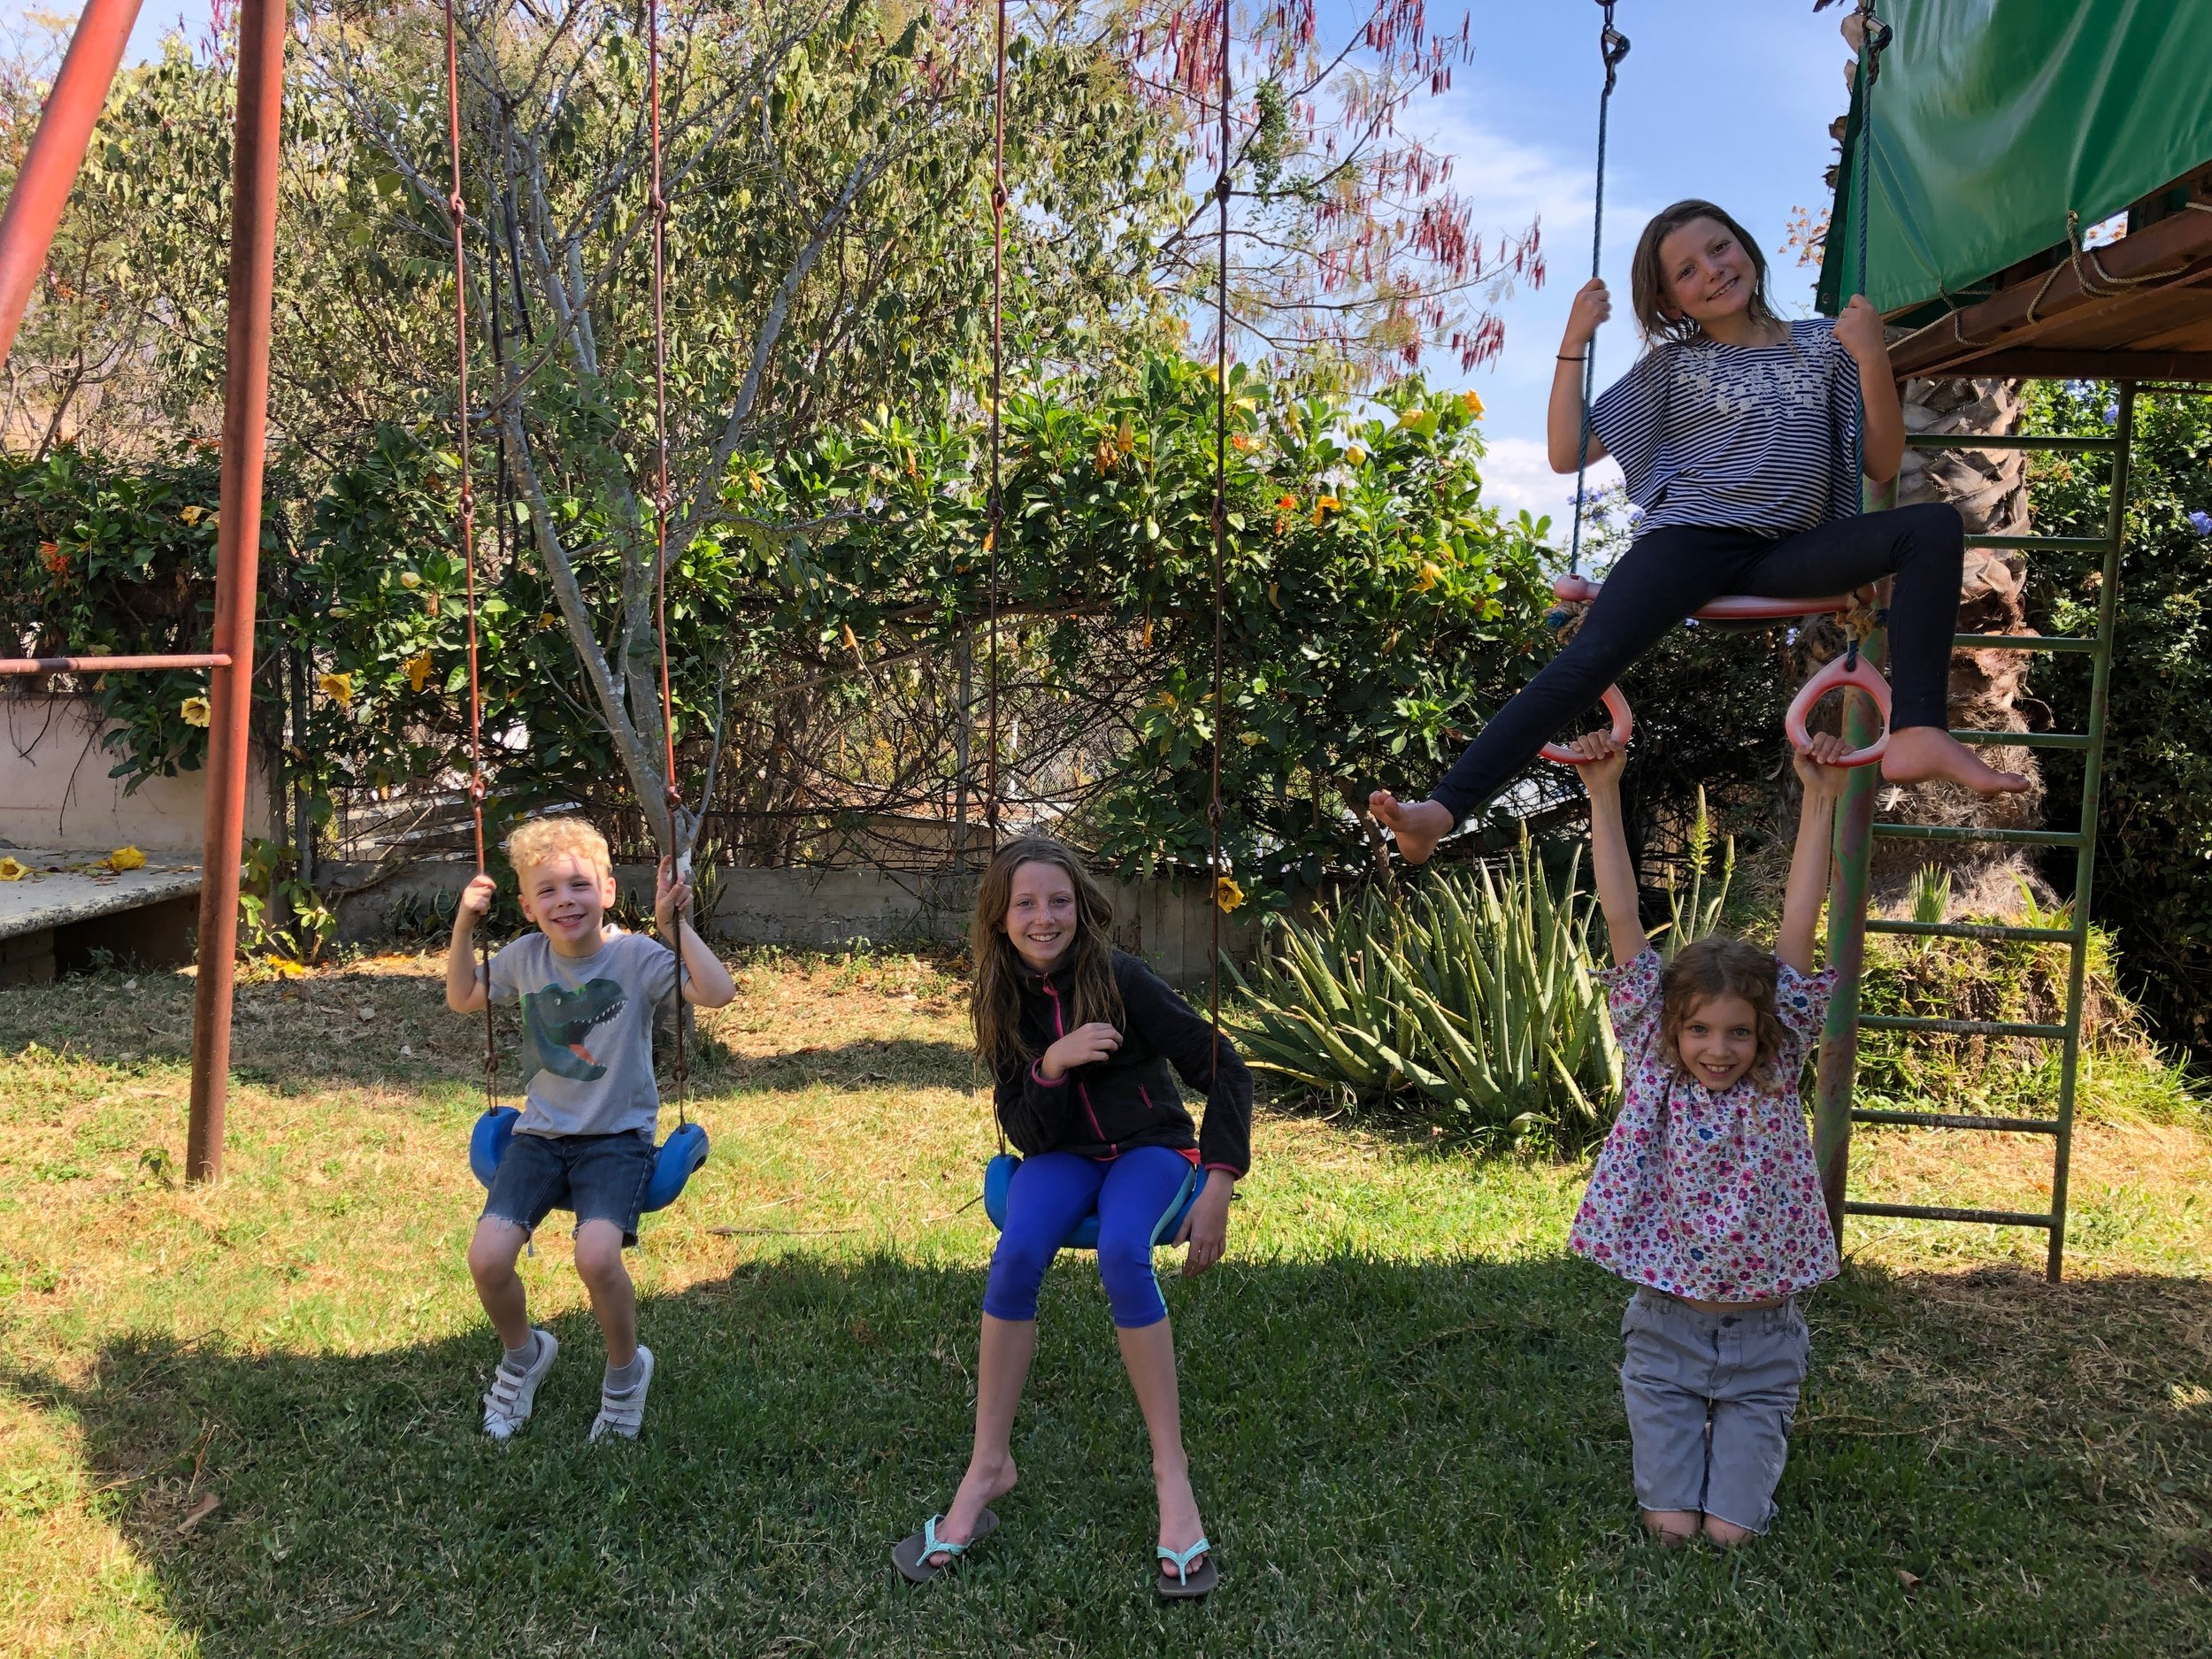 Louis, Ellie, Harlie and Isla on the play structure at our house in San Felipe del Agua